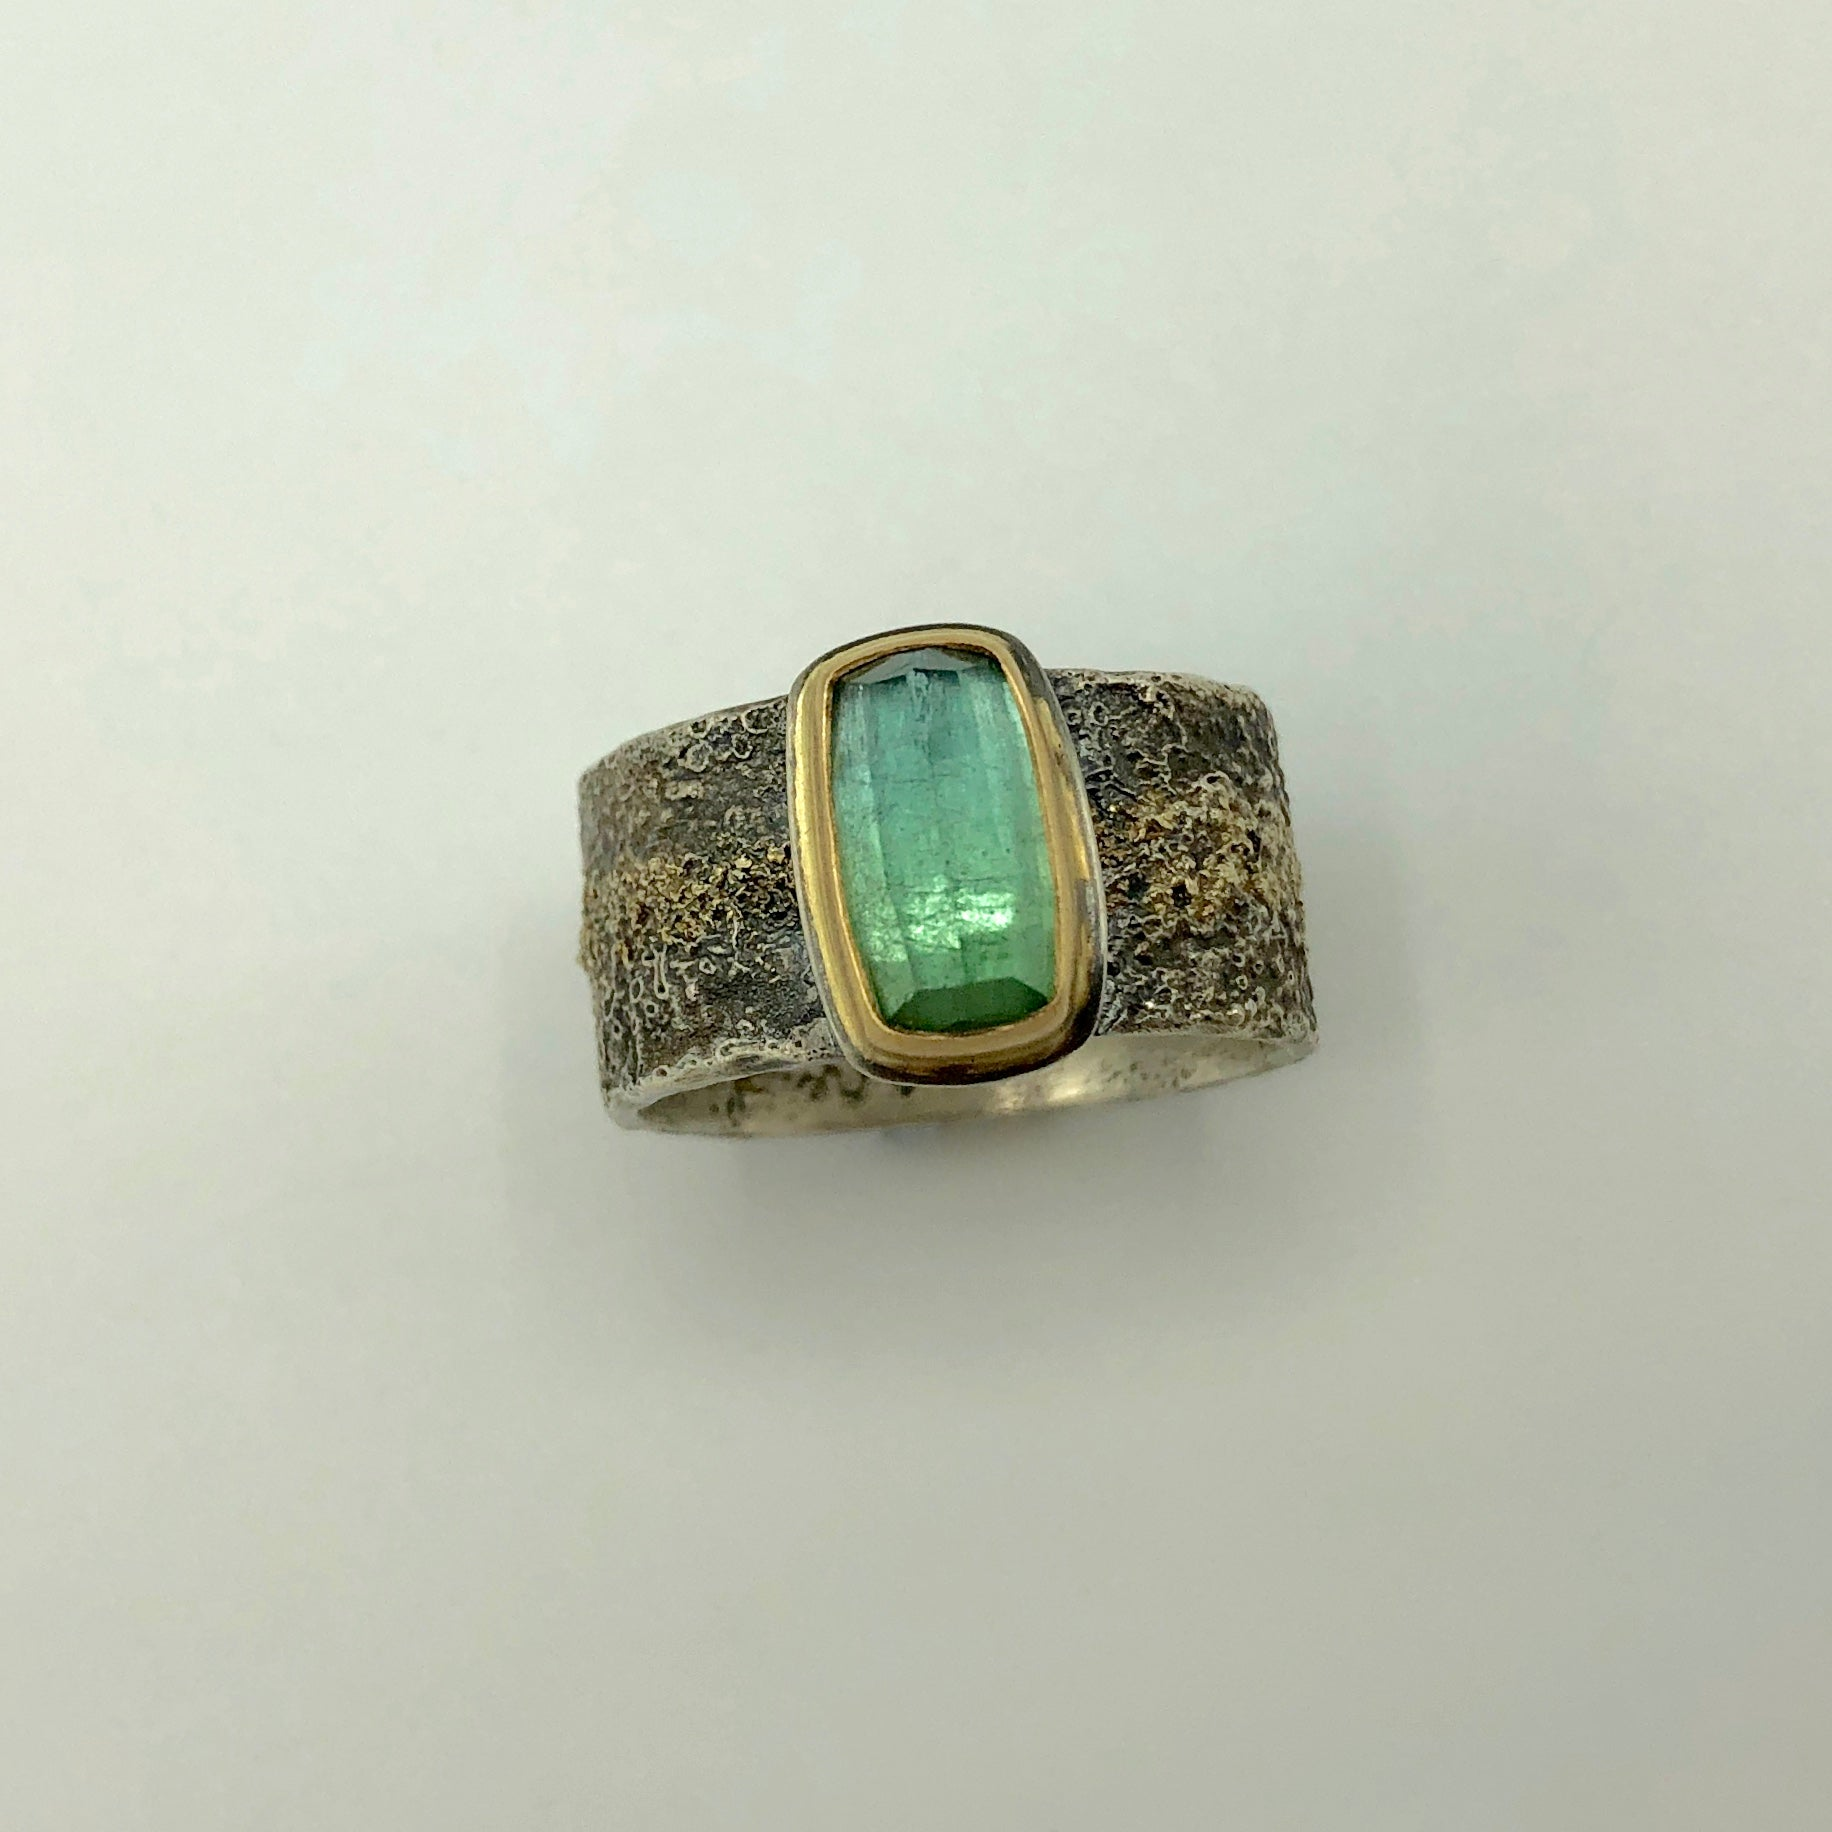 Bright Green Tourmaline Crystal Ring